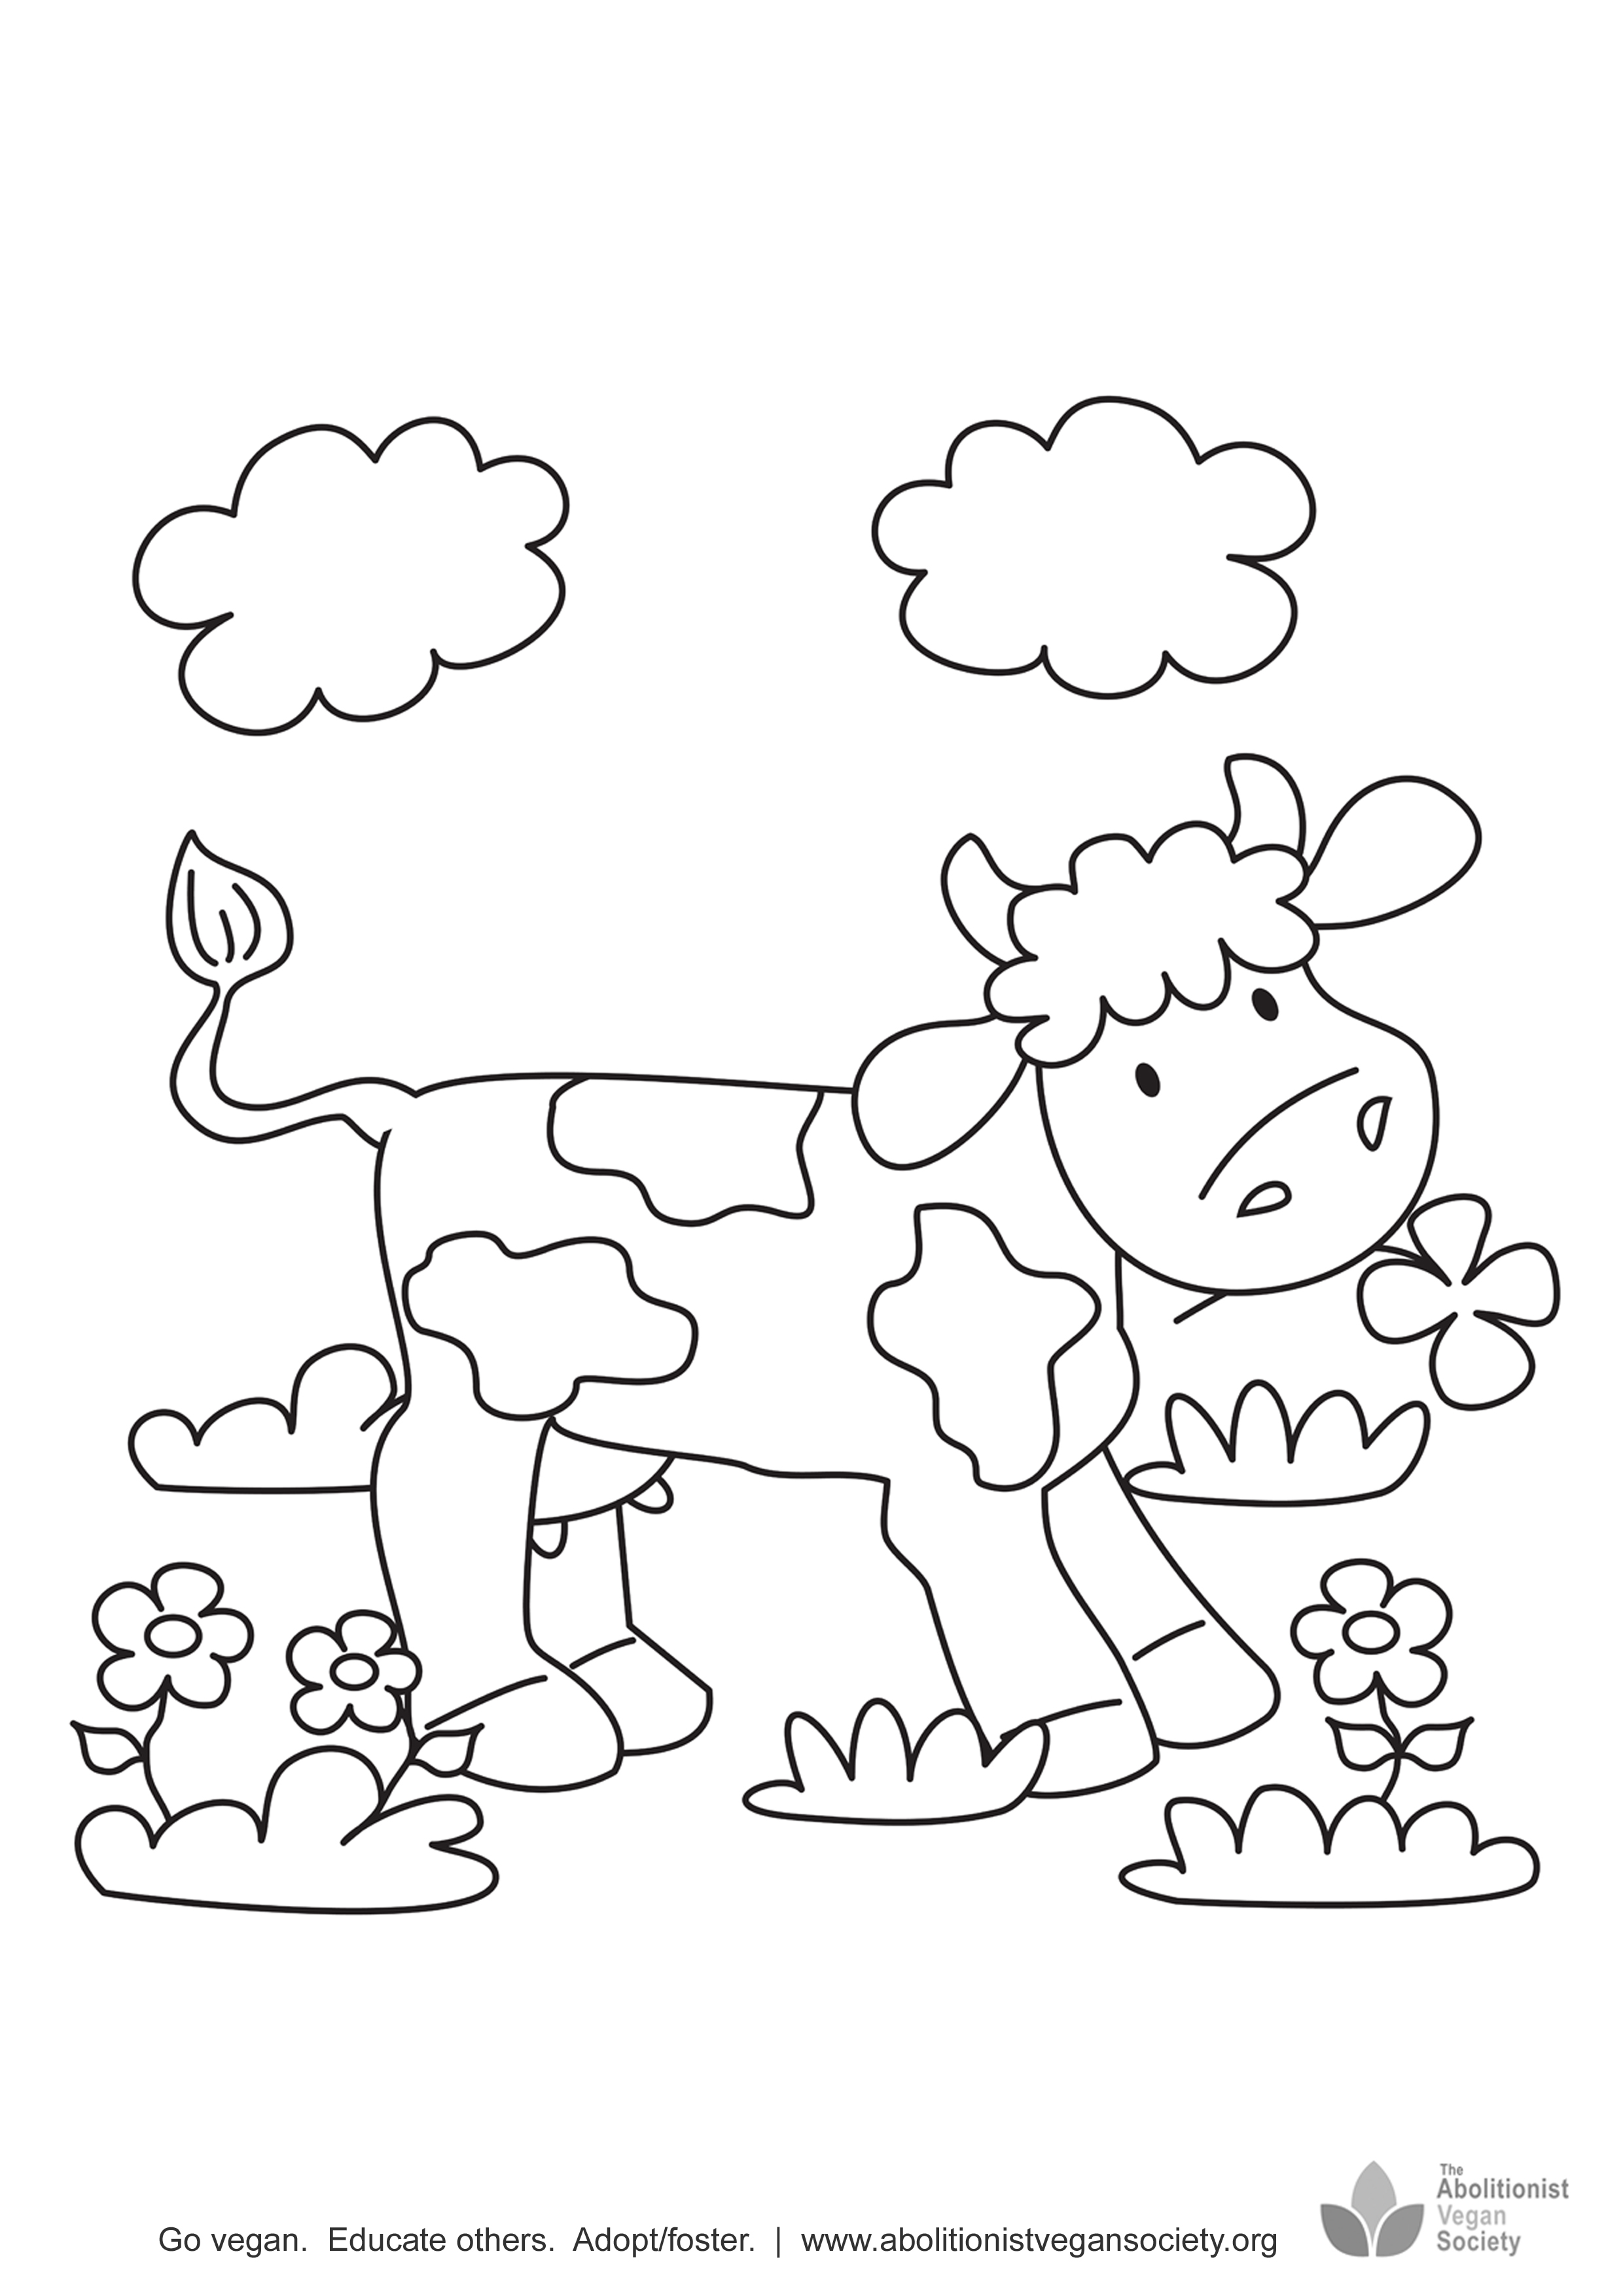 2480x3508 Coloring Pages For Children Abolitionist Vegan Society